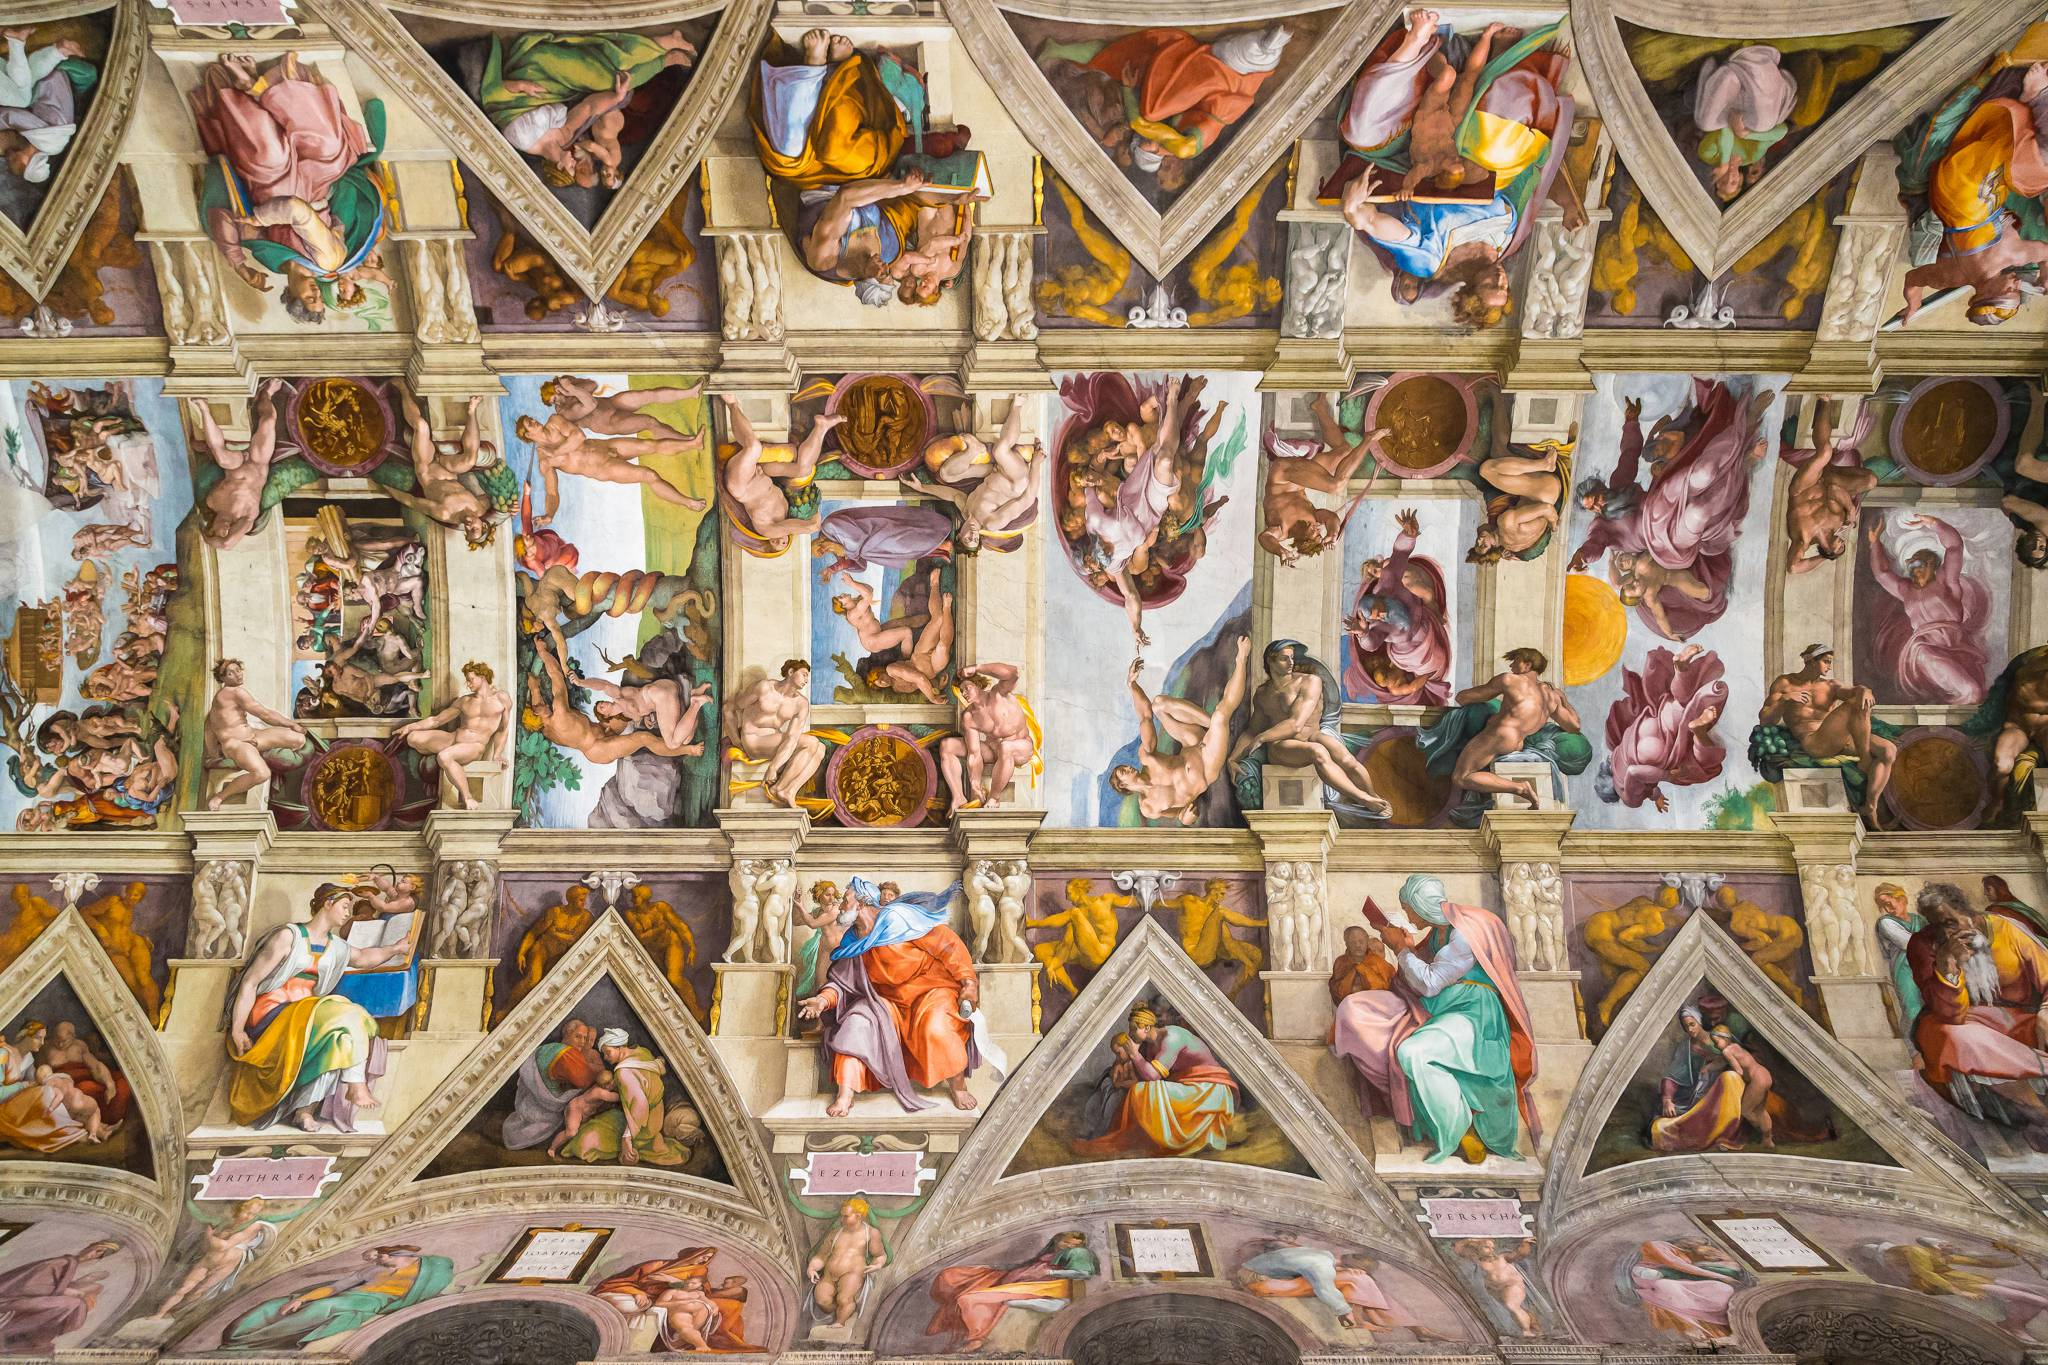 Awesome Sistine Chapel at Vatican City